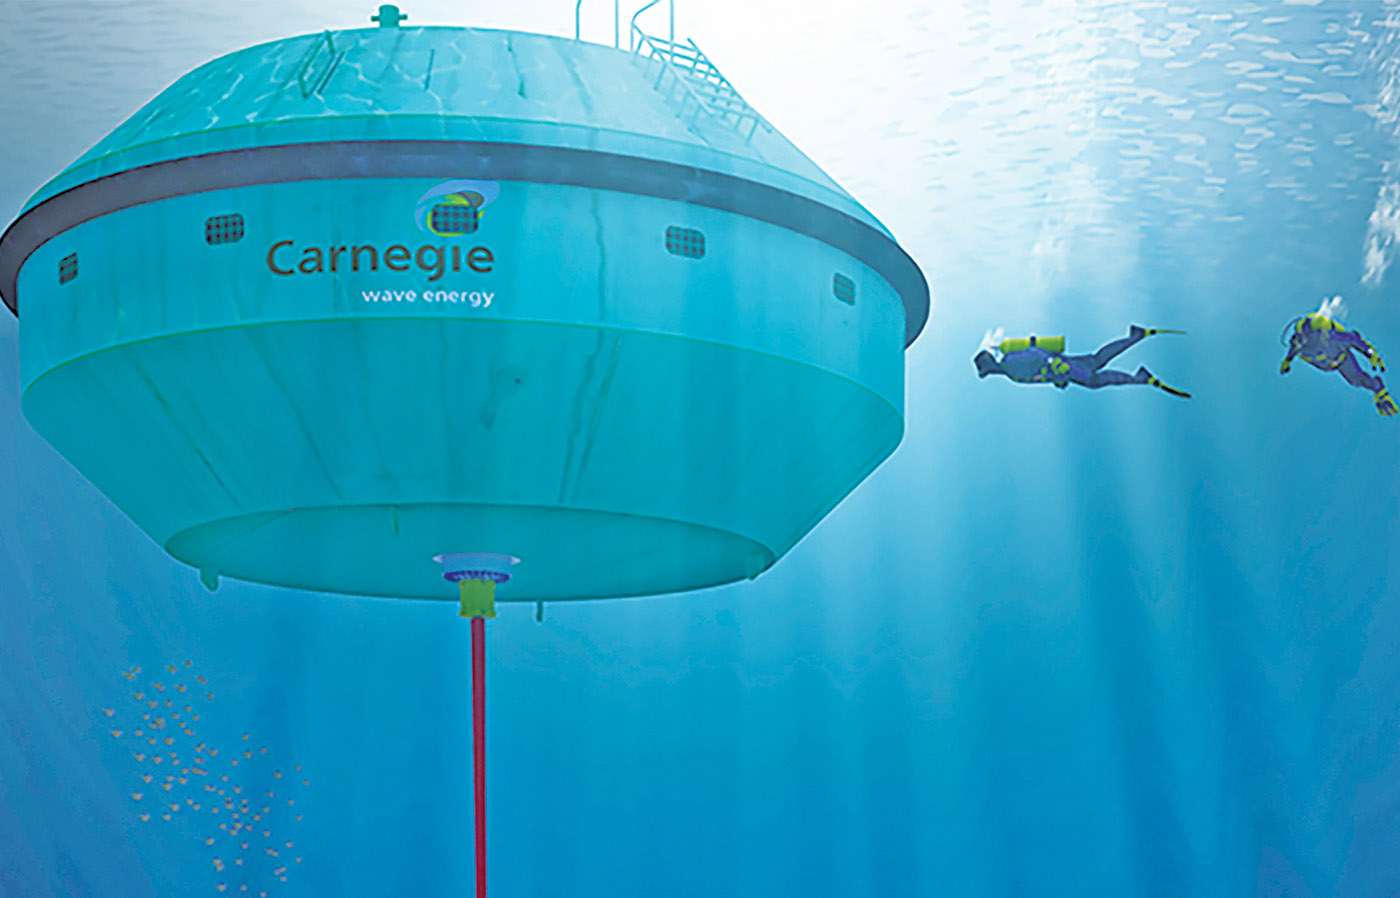 carnegie-perth-wave-energy-project